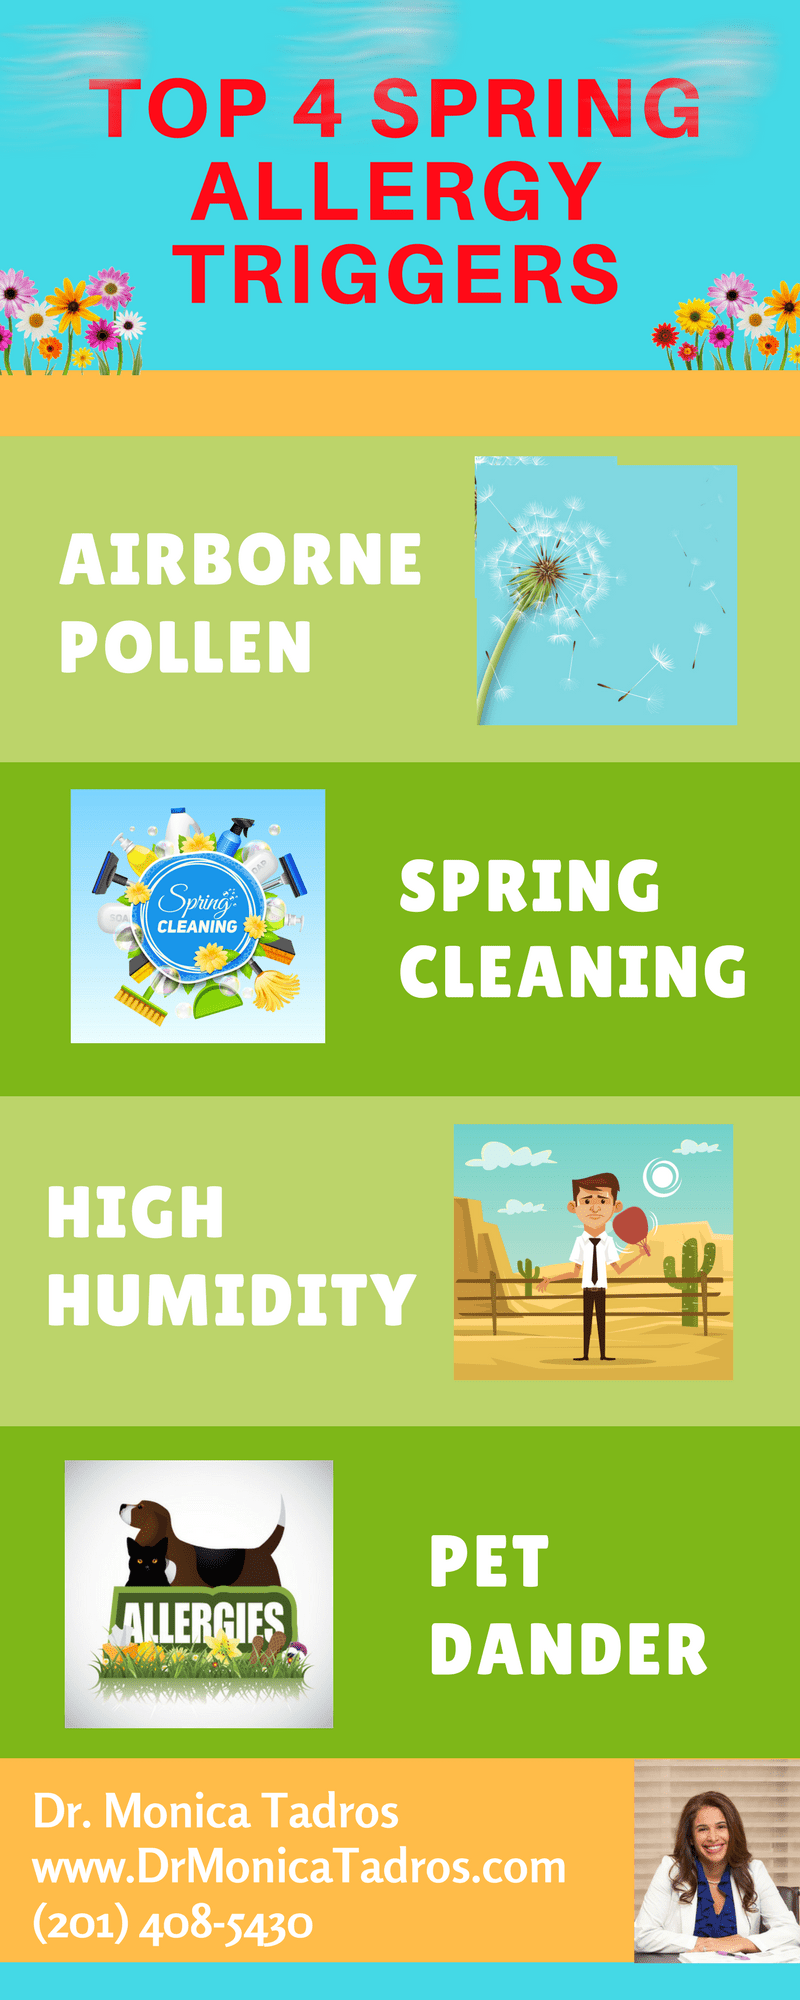 NYC ENT Releases Top 4 Triggers for Spring Allergies – New